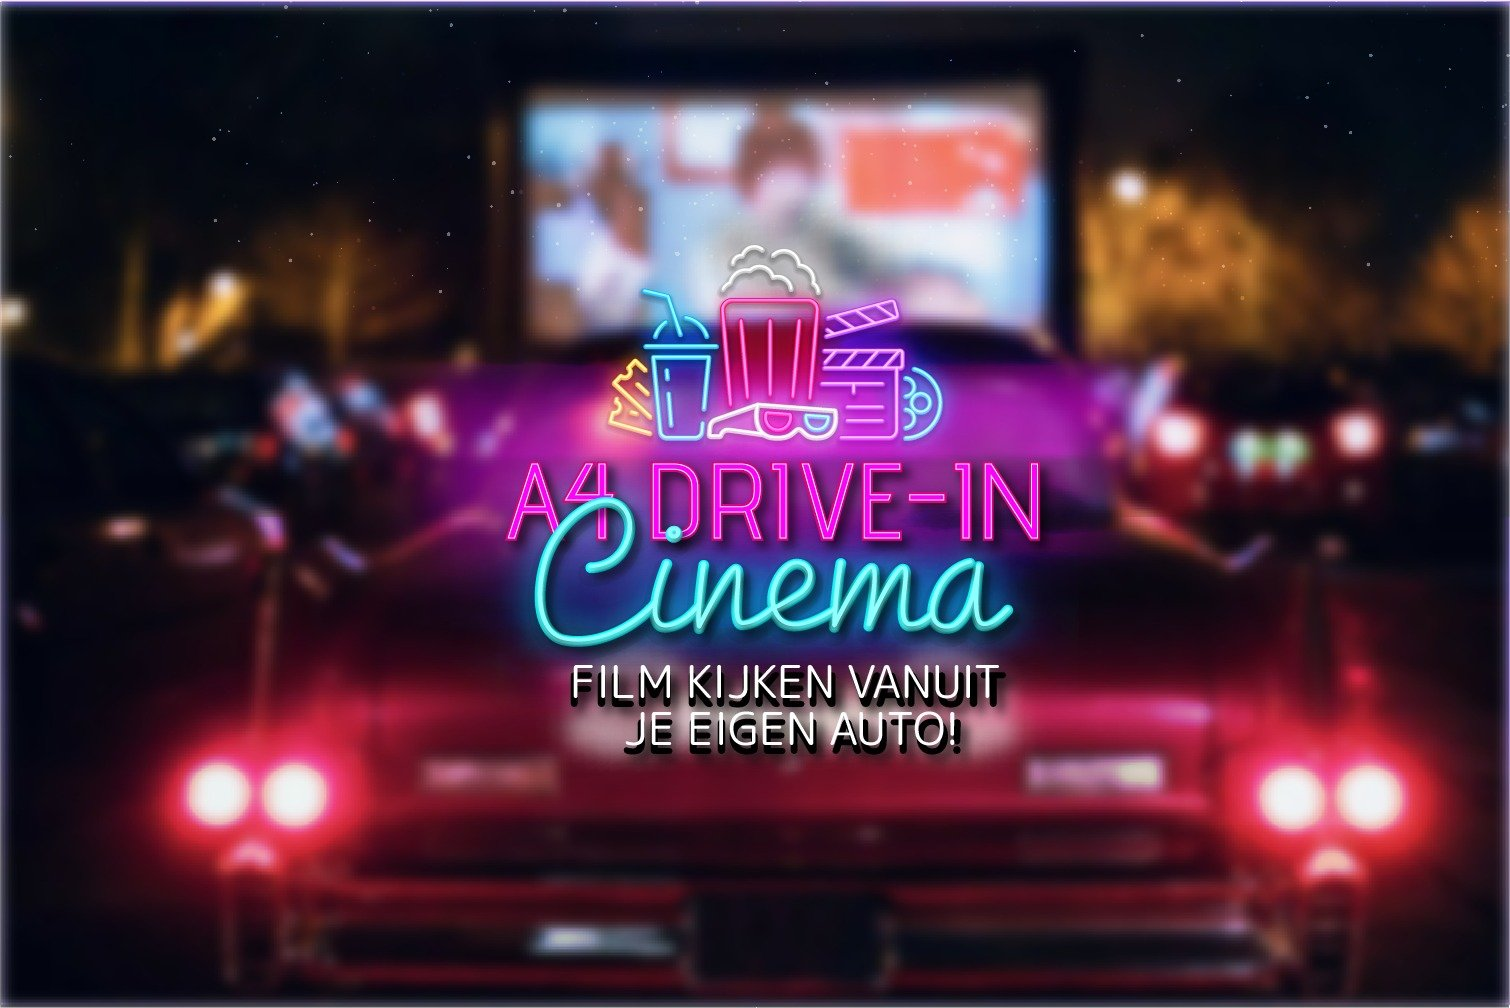 Drive-in bioscoop: Grease